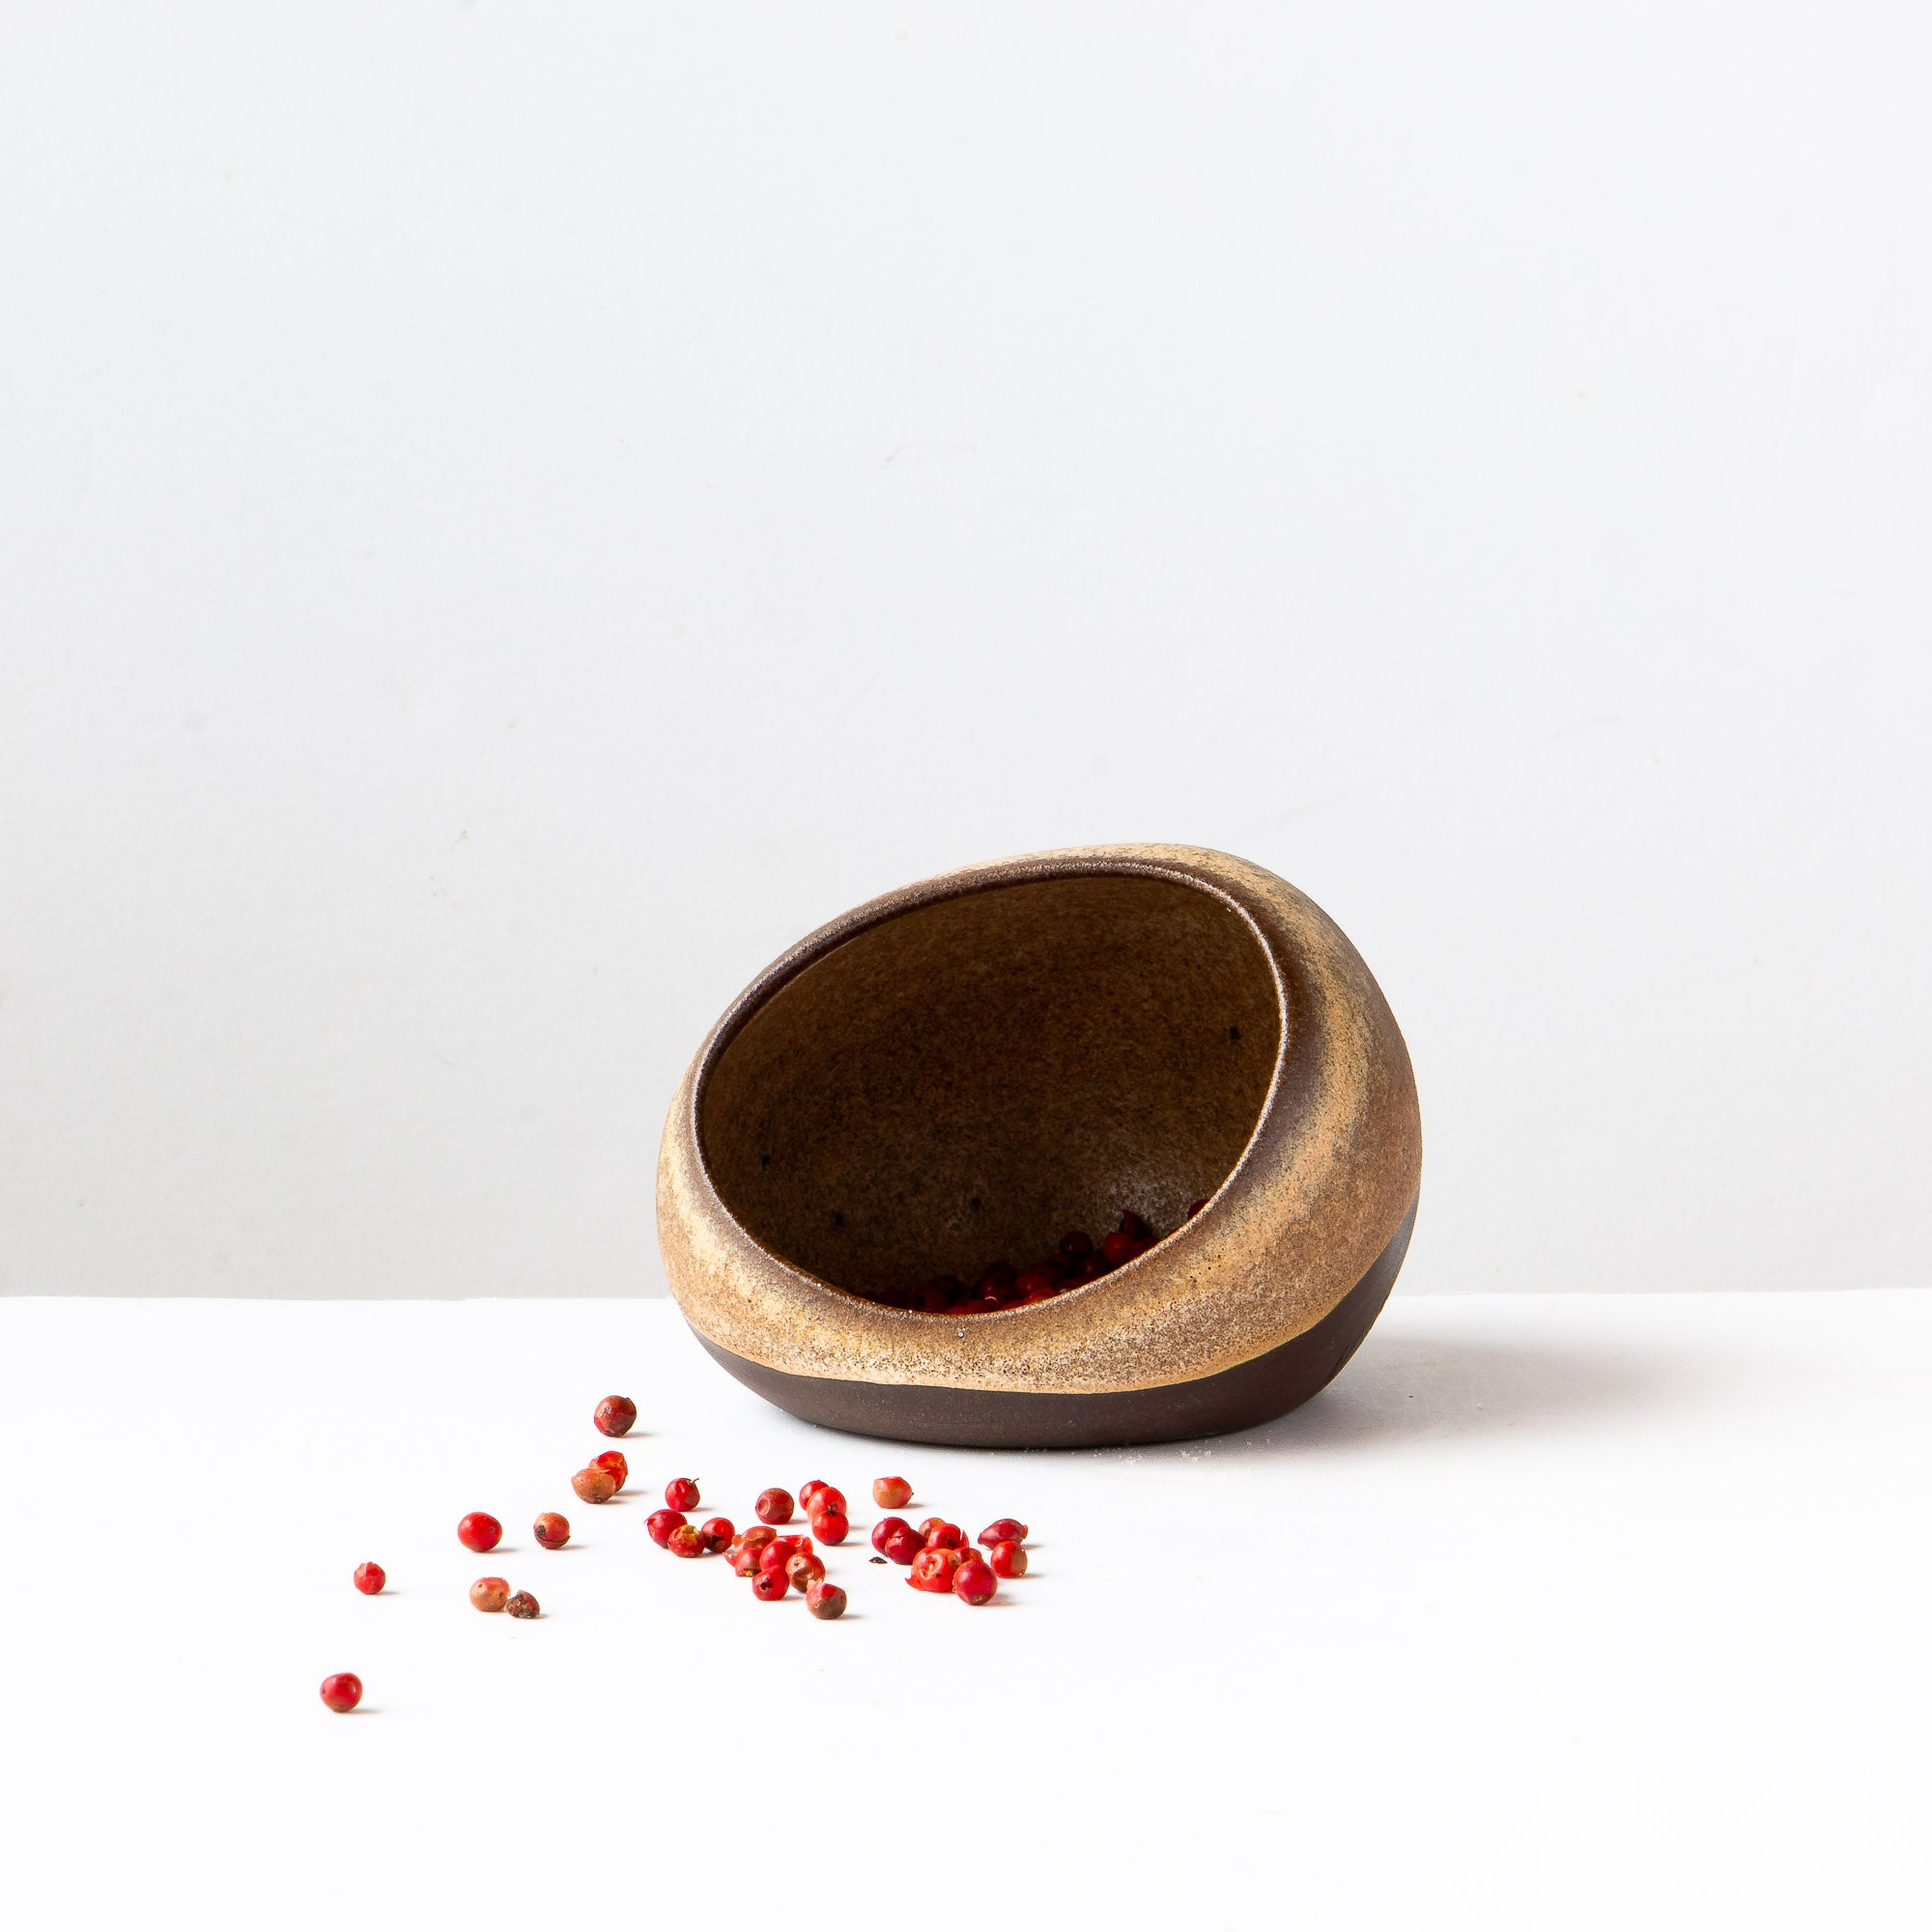 Handmade Salt Cellar in Black Sandstone Ceramic